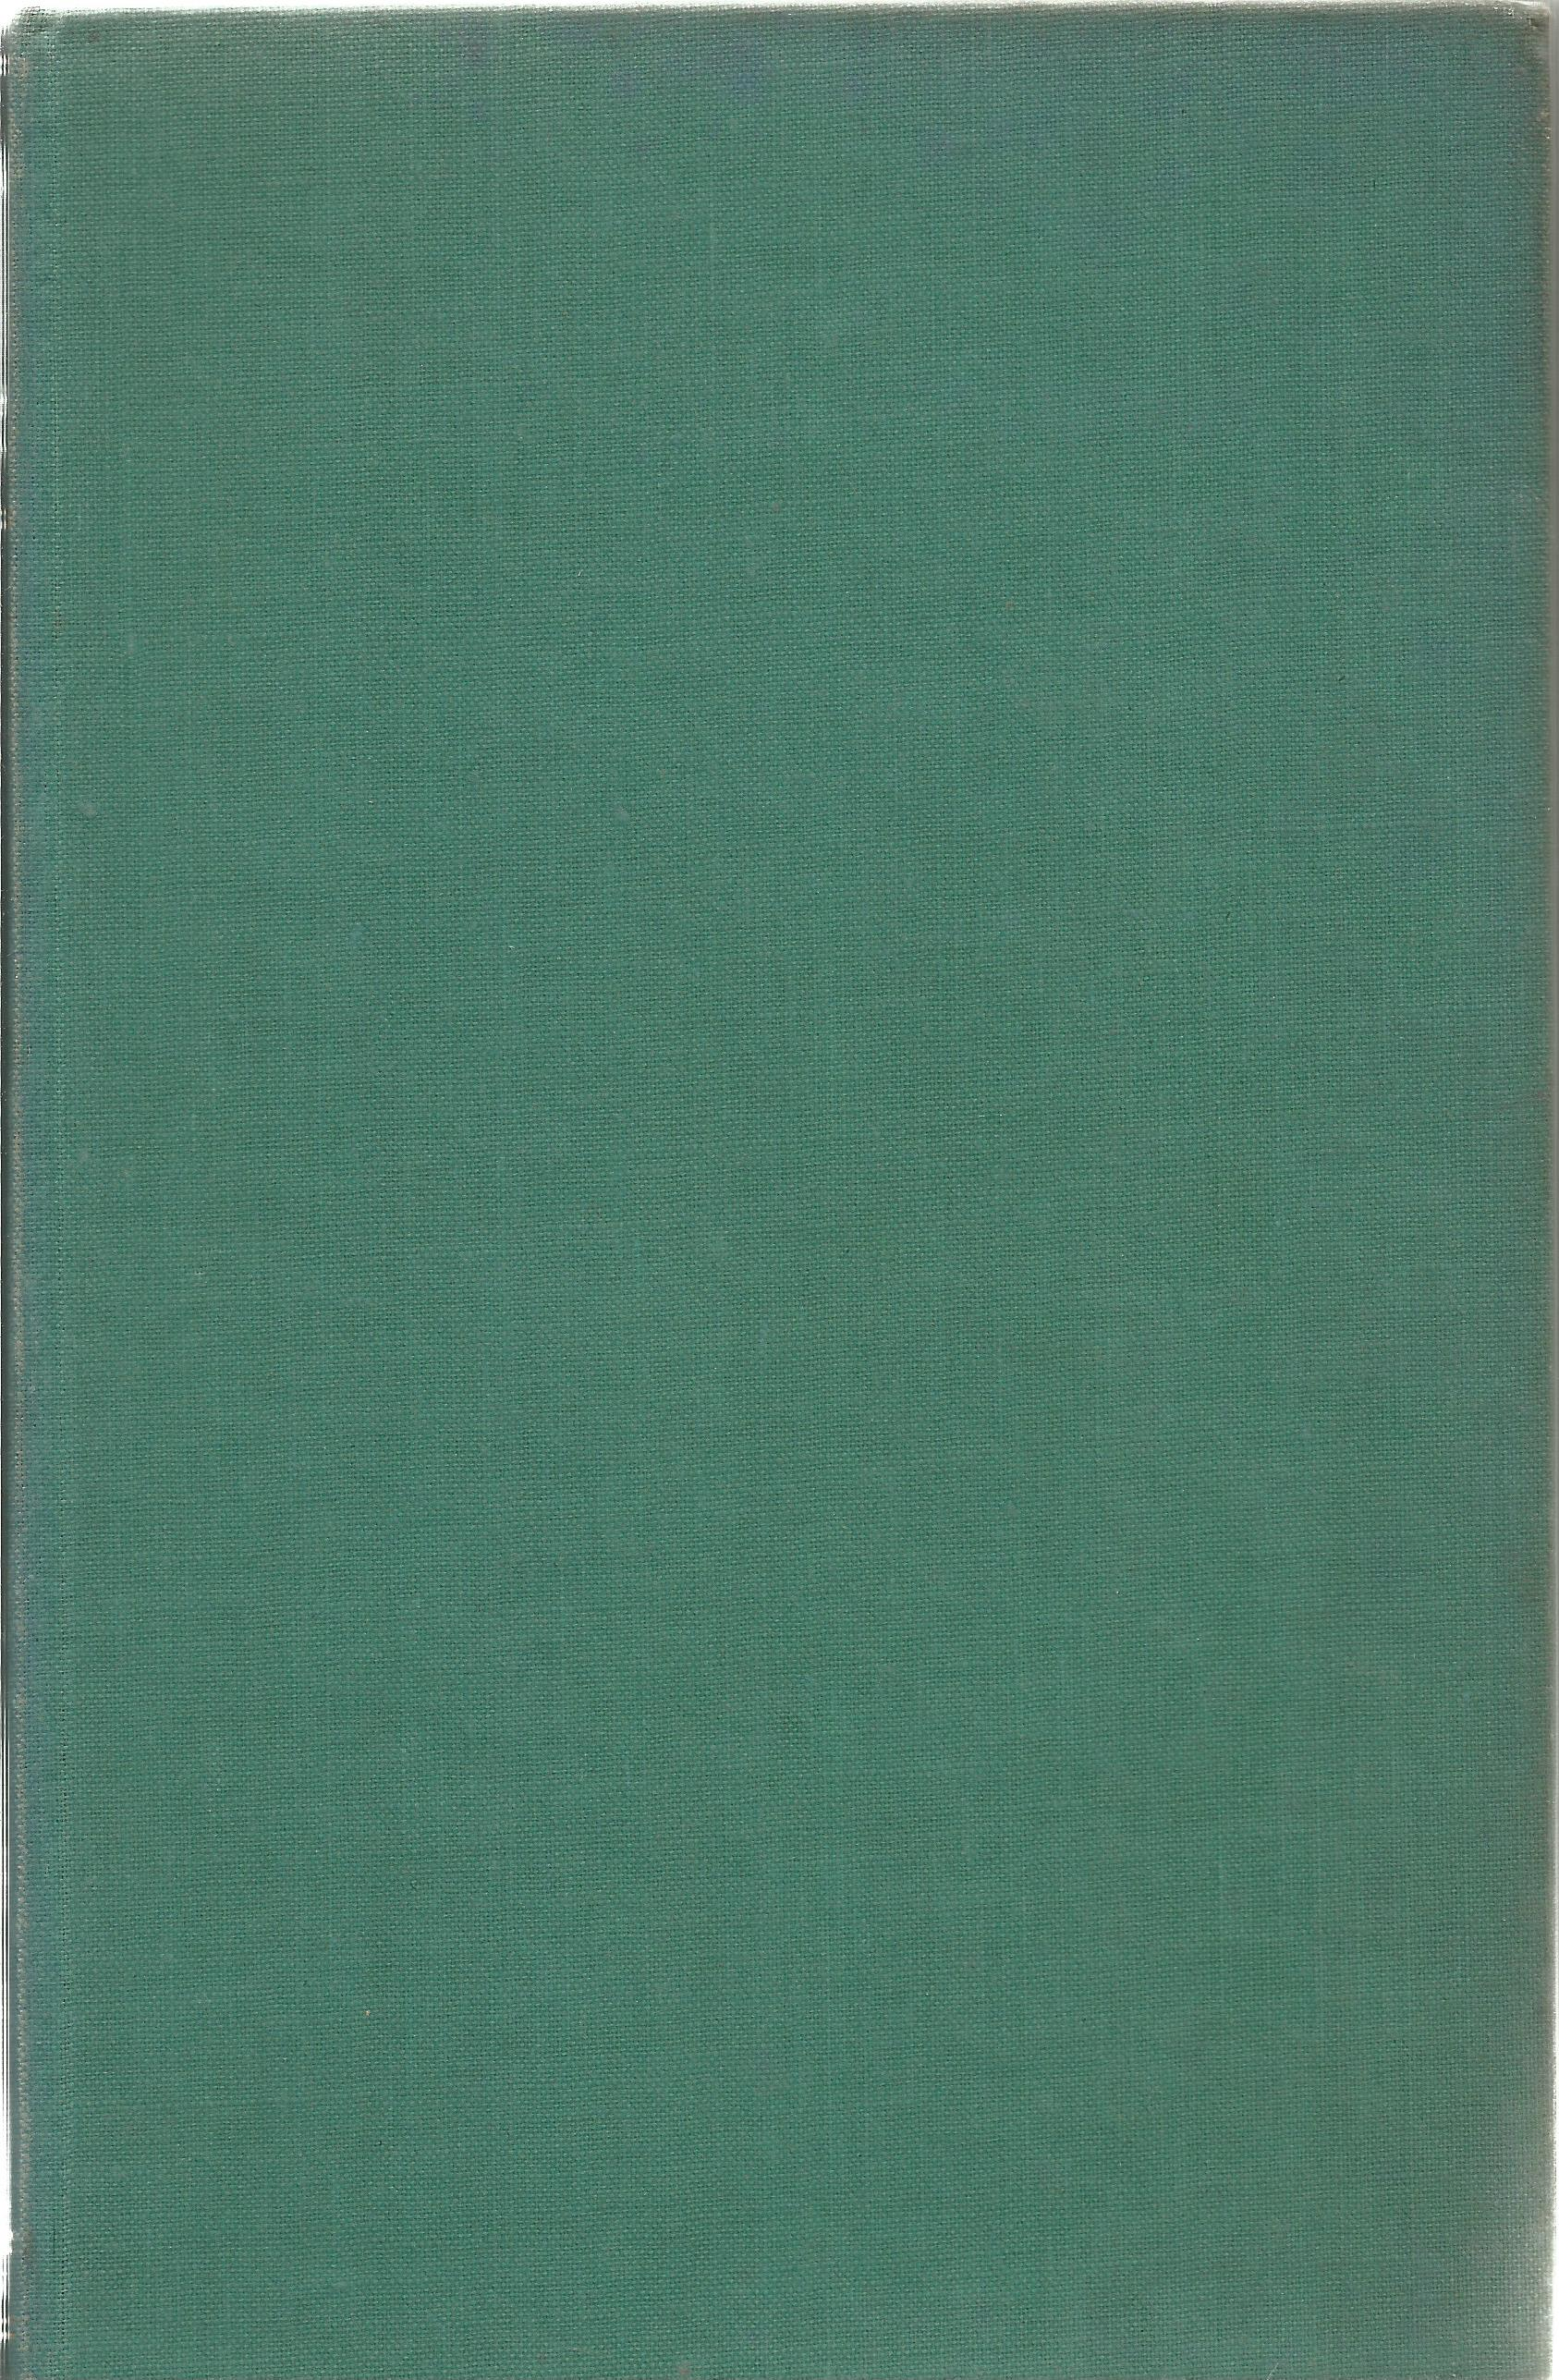 Charles Morgan Hardback Book The River Line A Play signed by the Author on the Title Page and